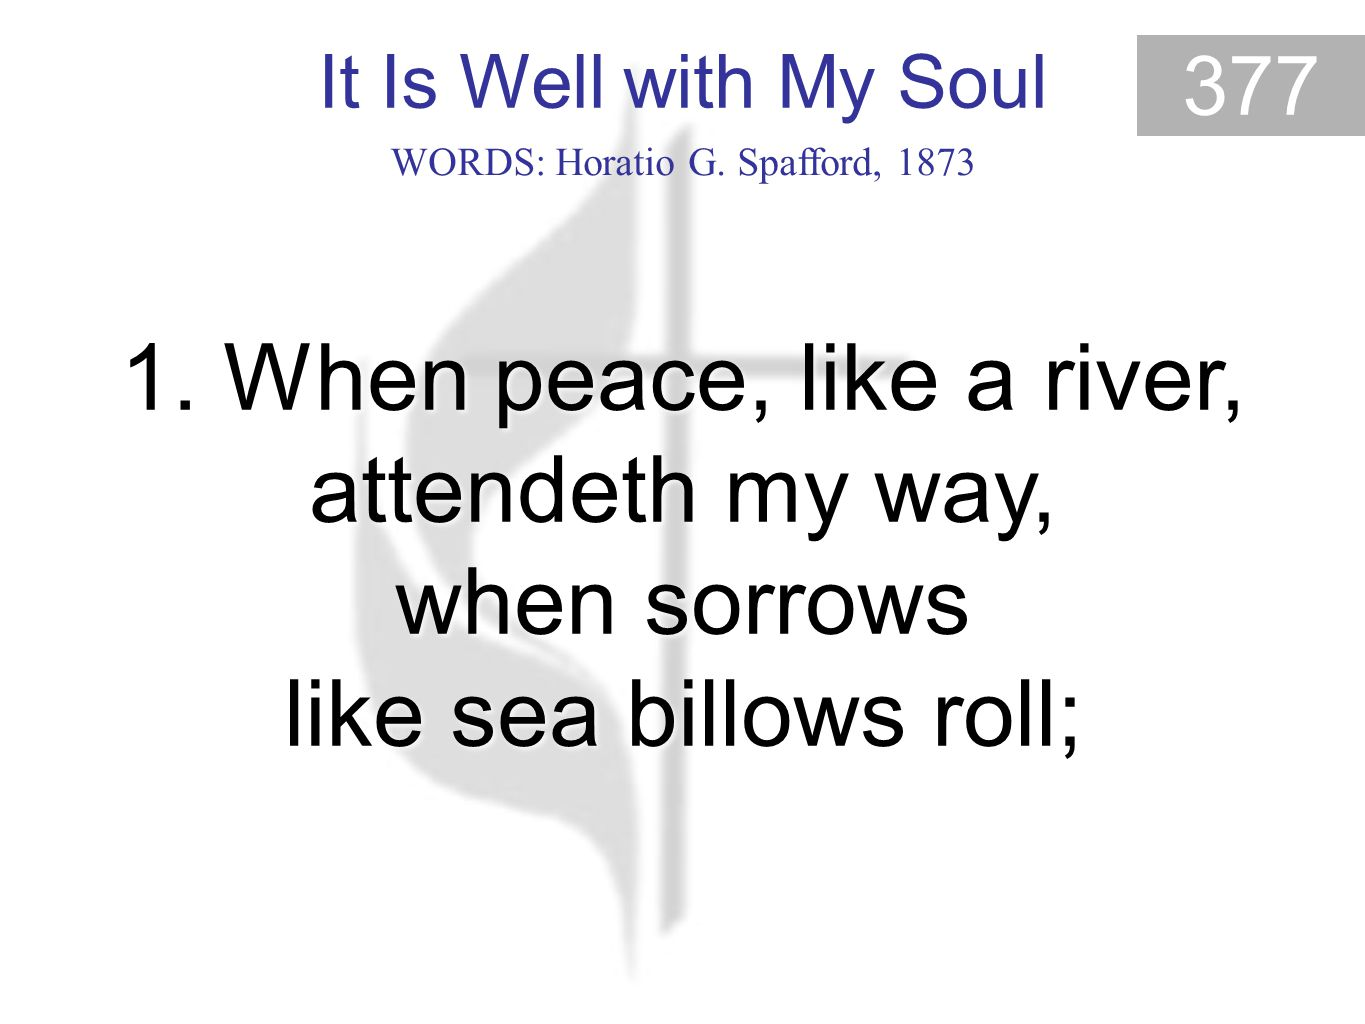 It Is Well with My Soul 377 It Is Well With My Soul (1) WORDS: Horatio G. Spafford, 1873 1. When peace, like a river, attendeth my way, when sorrows l